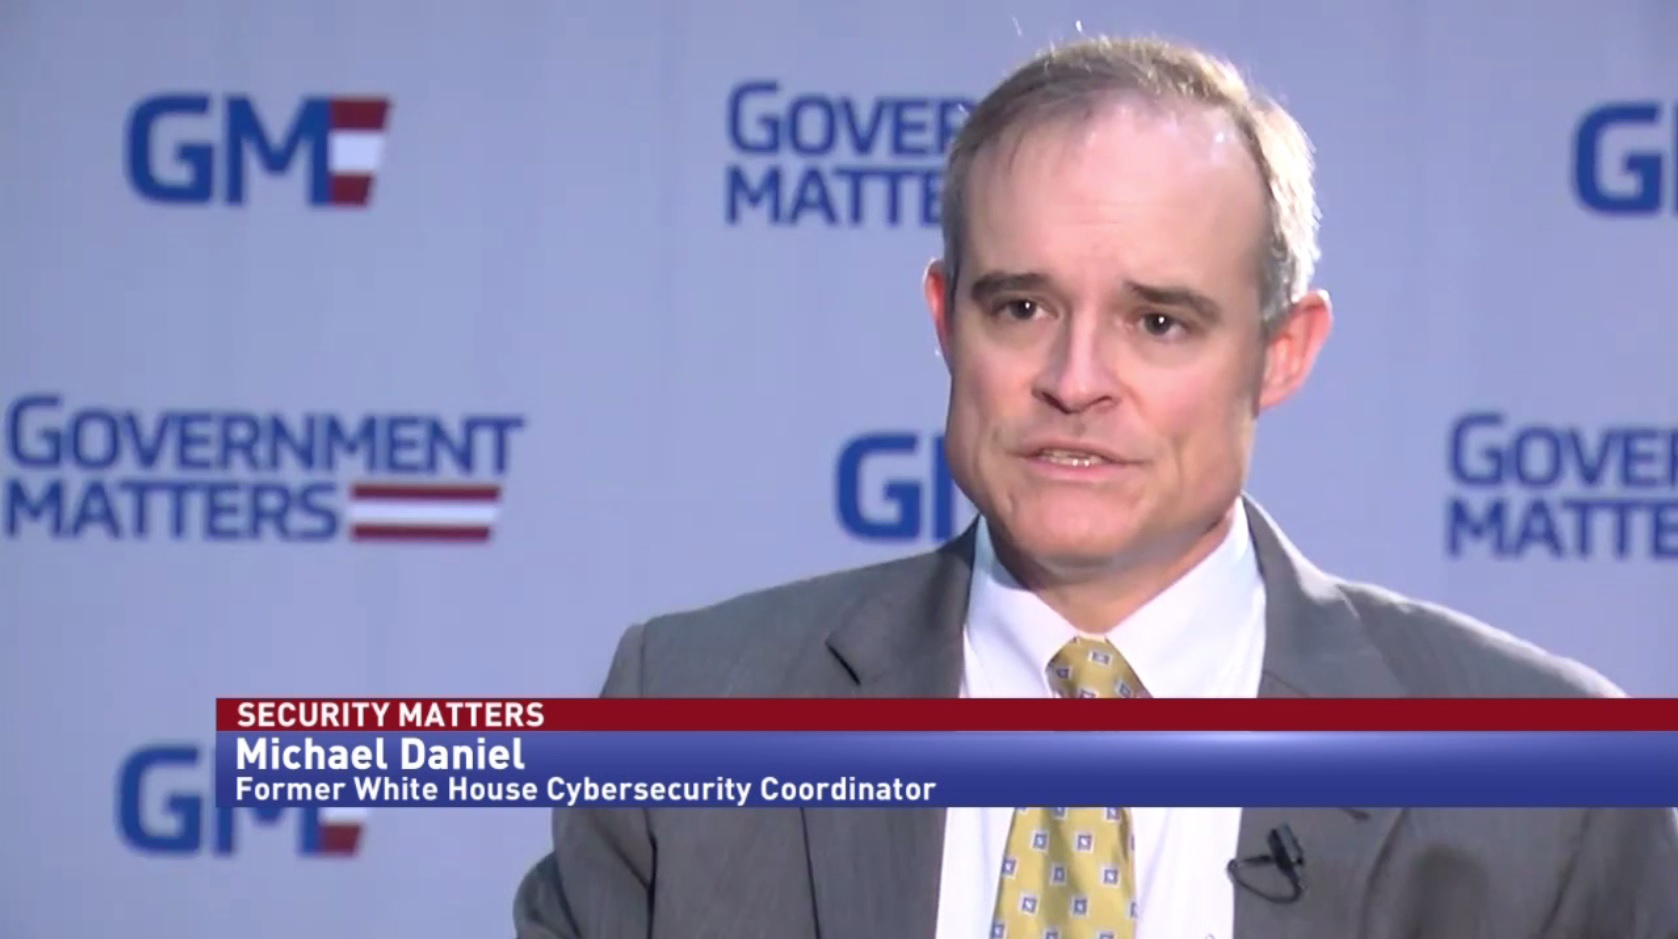 Obama's cyber czar calls for 'a mix' of centralized security